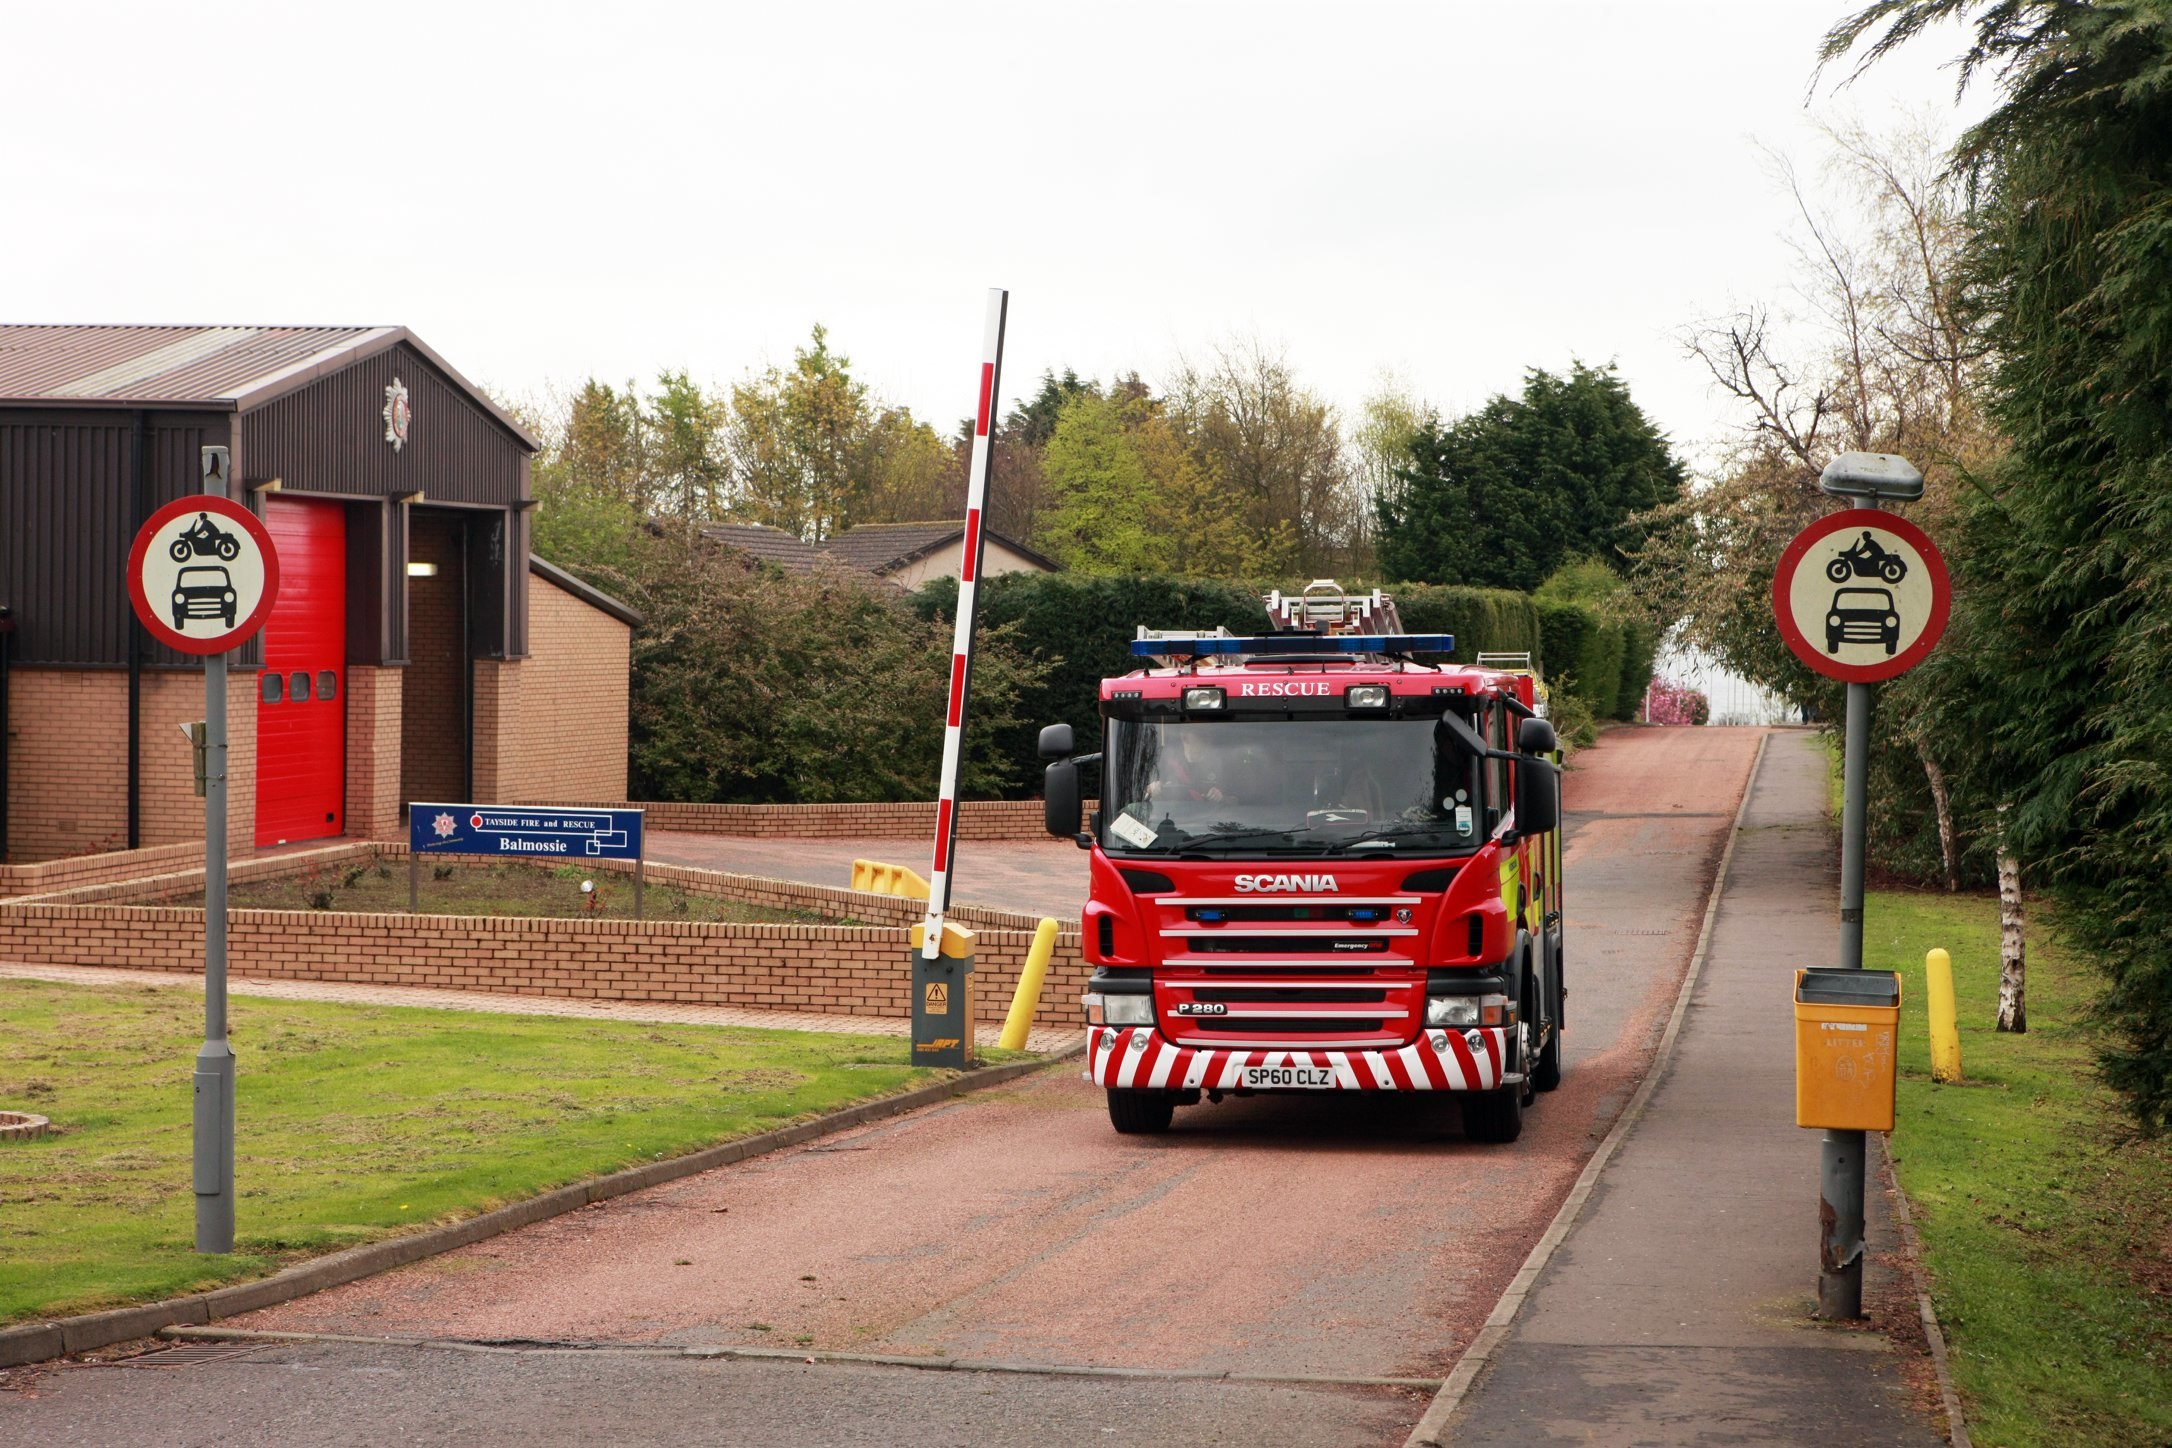 Concerns have been raised over the future of Dundee's fire stations.